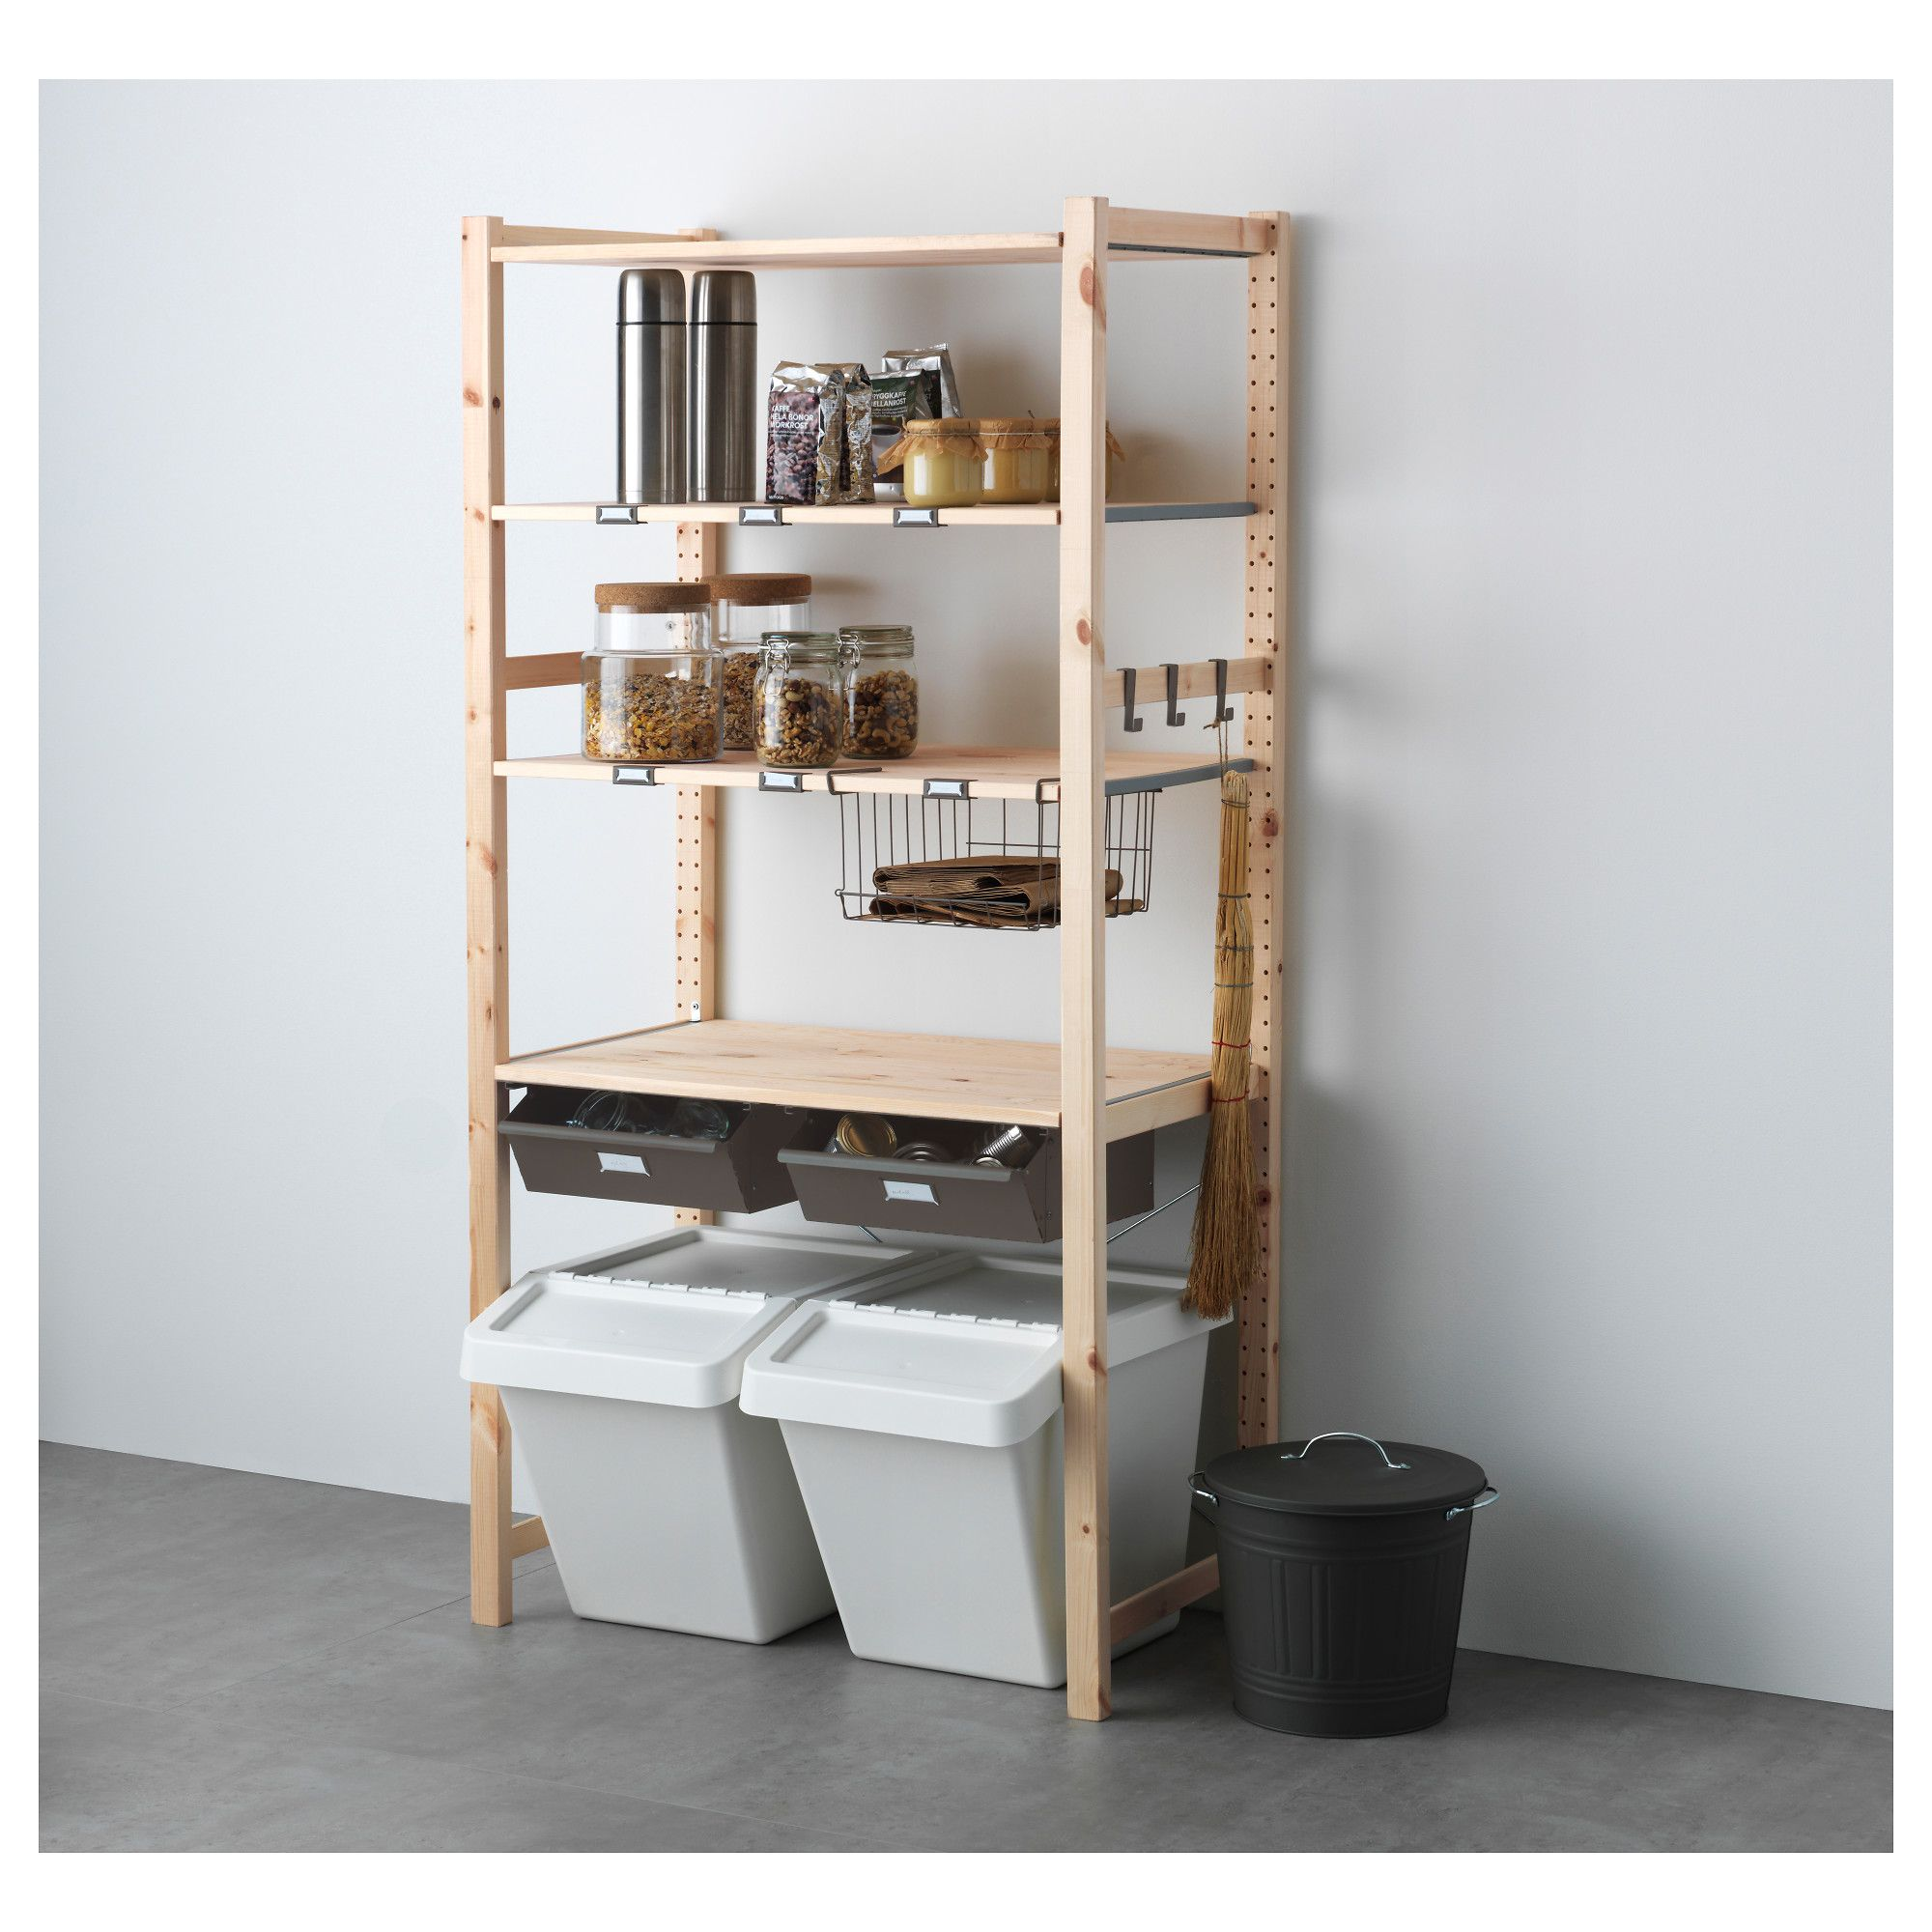 ikea ivar shelving unit with drawers untreated solid pine is a